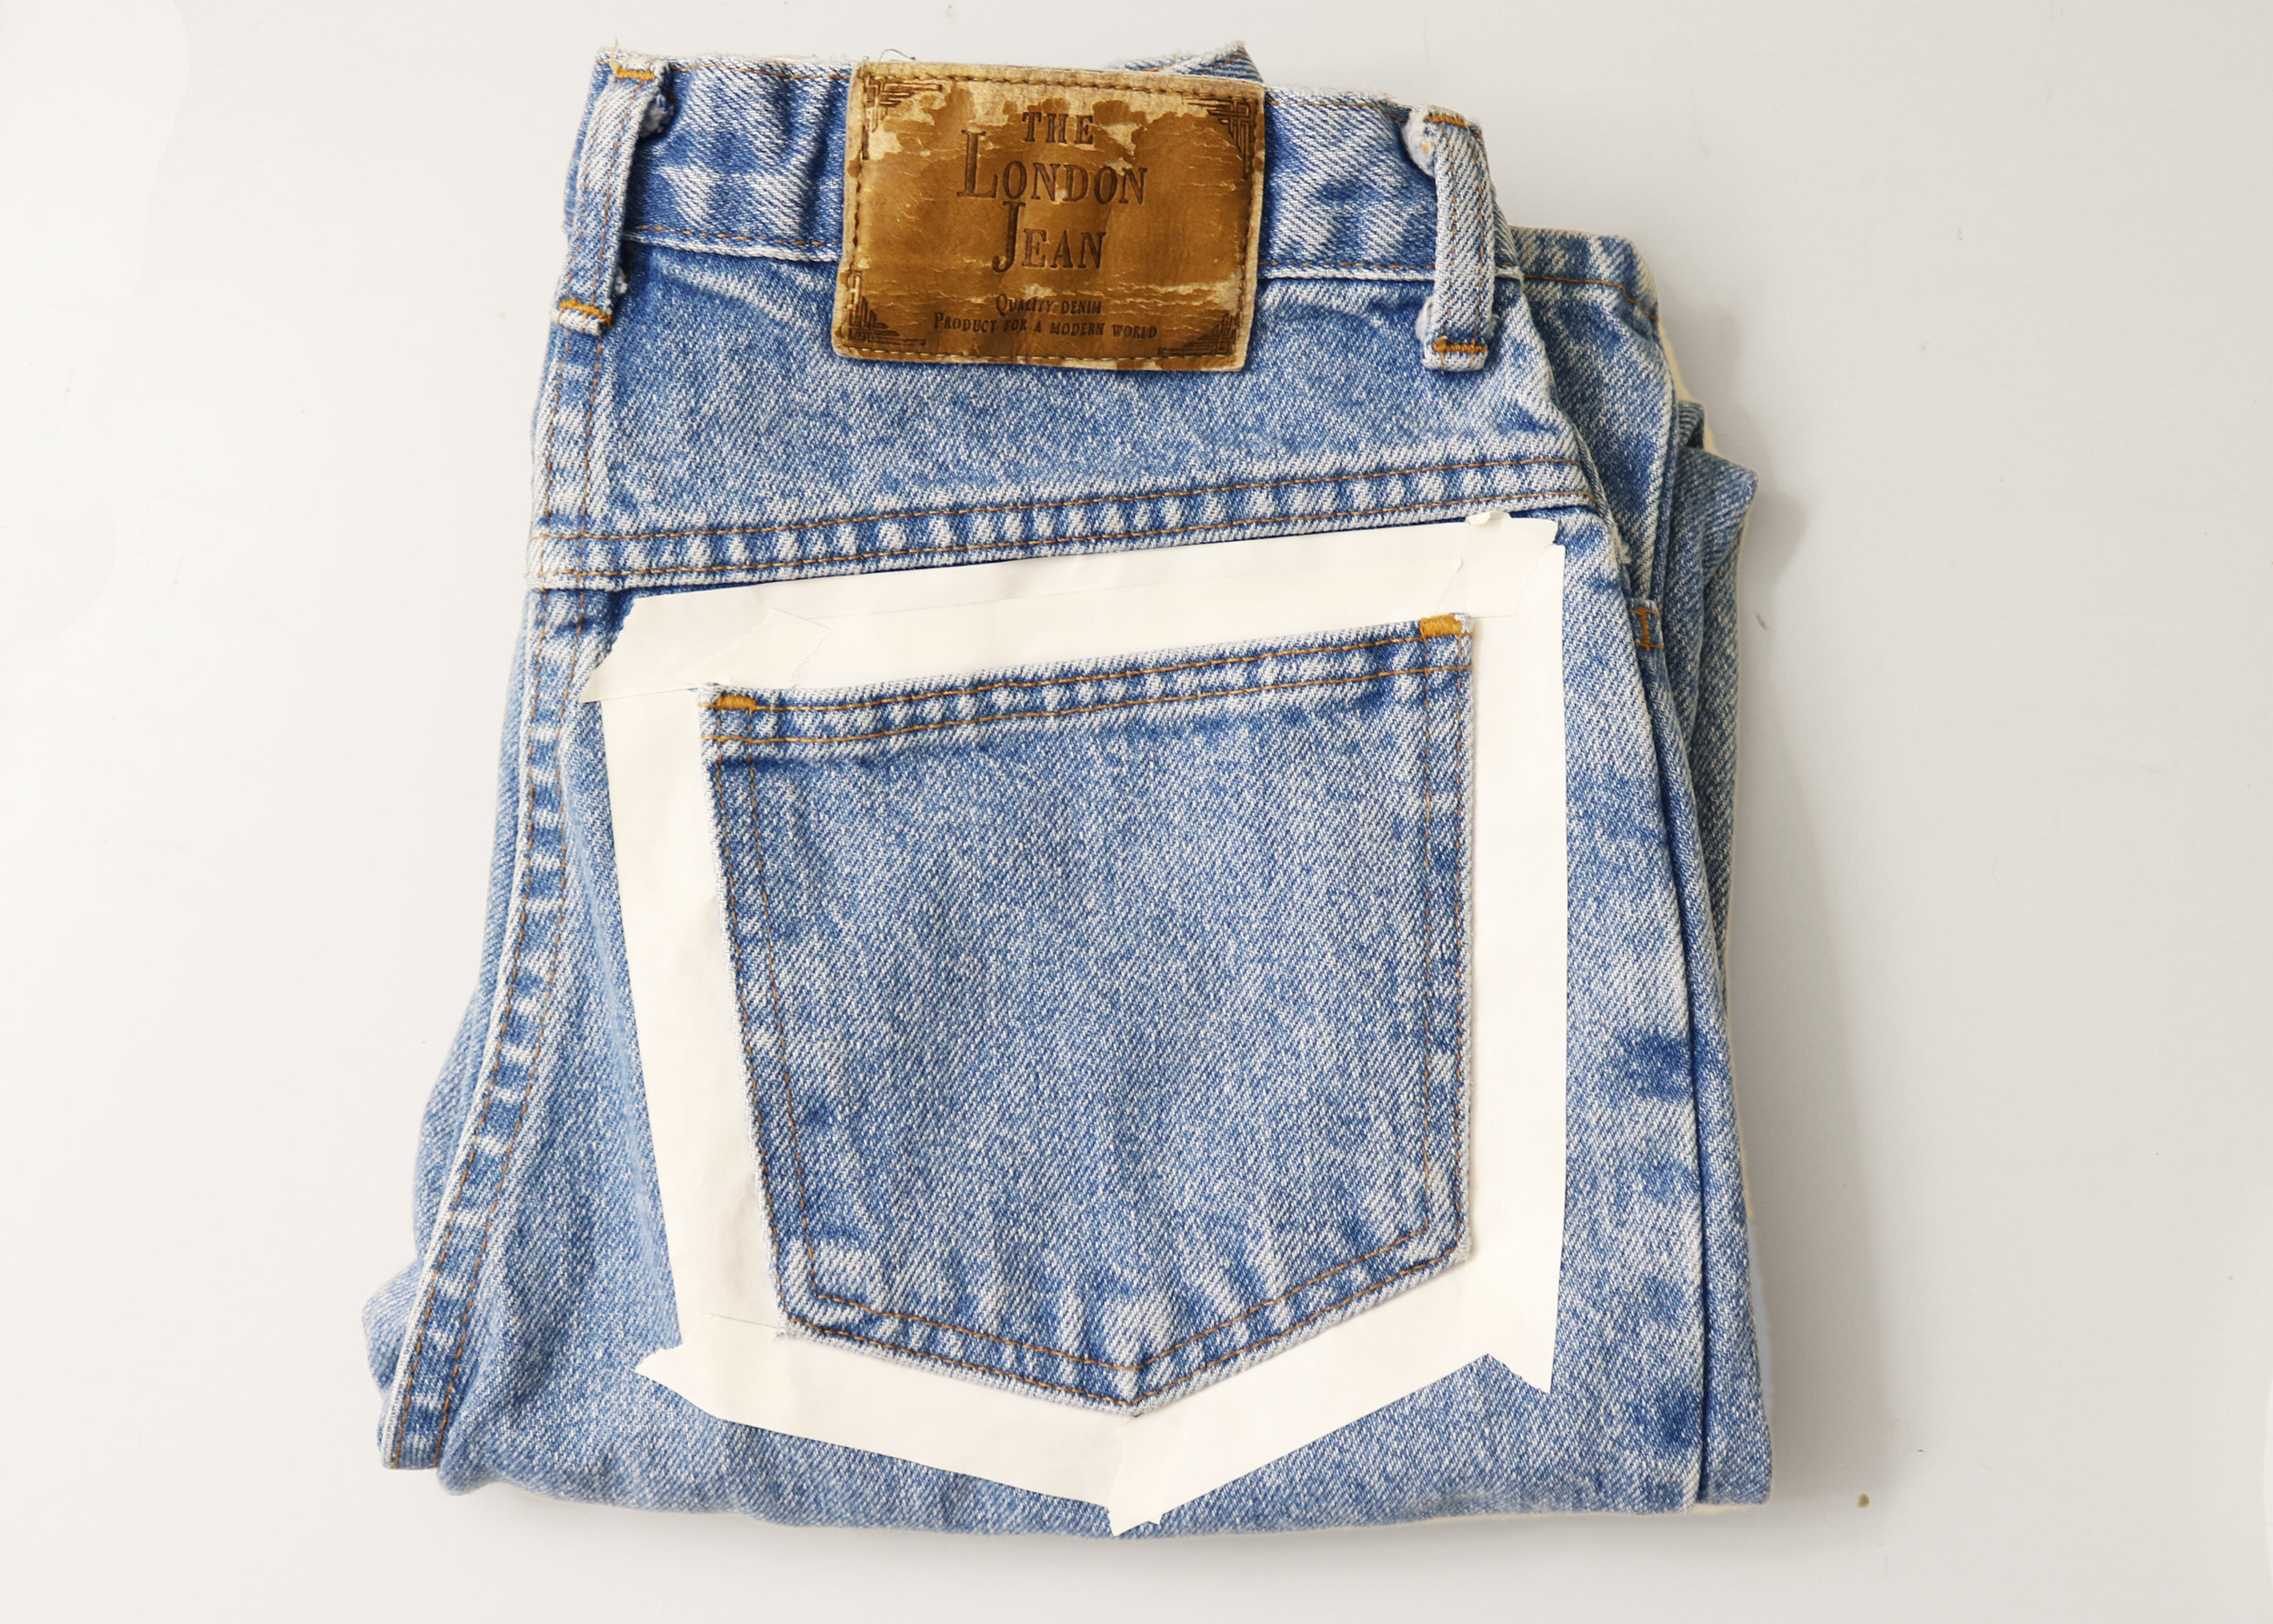 How To Paint On Jeans 5 Steps With Pictures Kessler Ramirez Art Travel